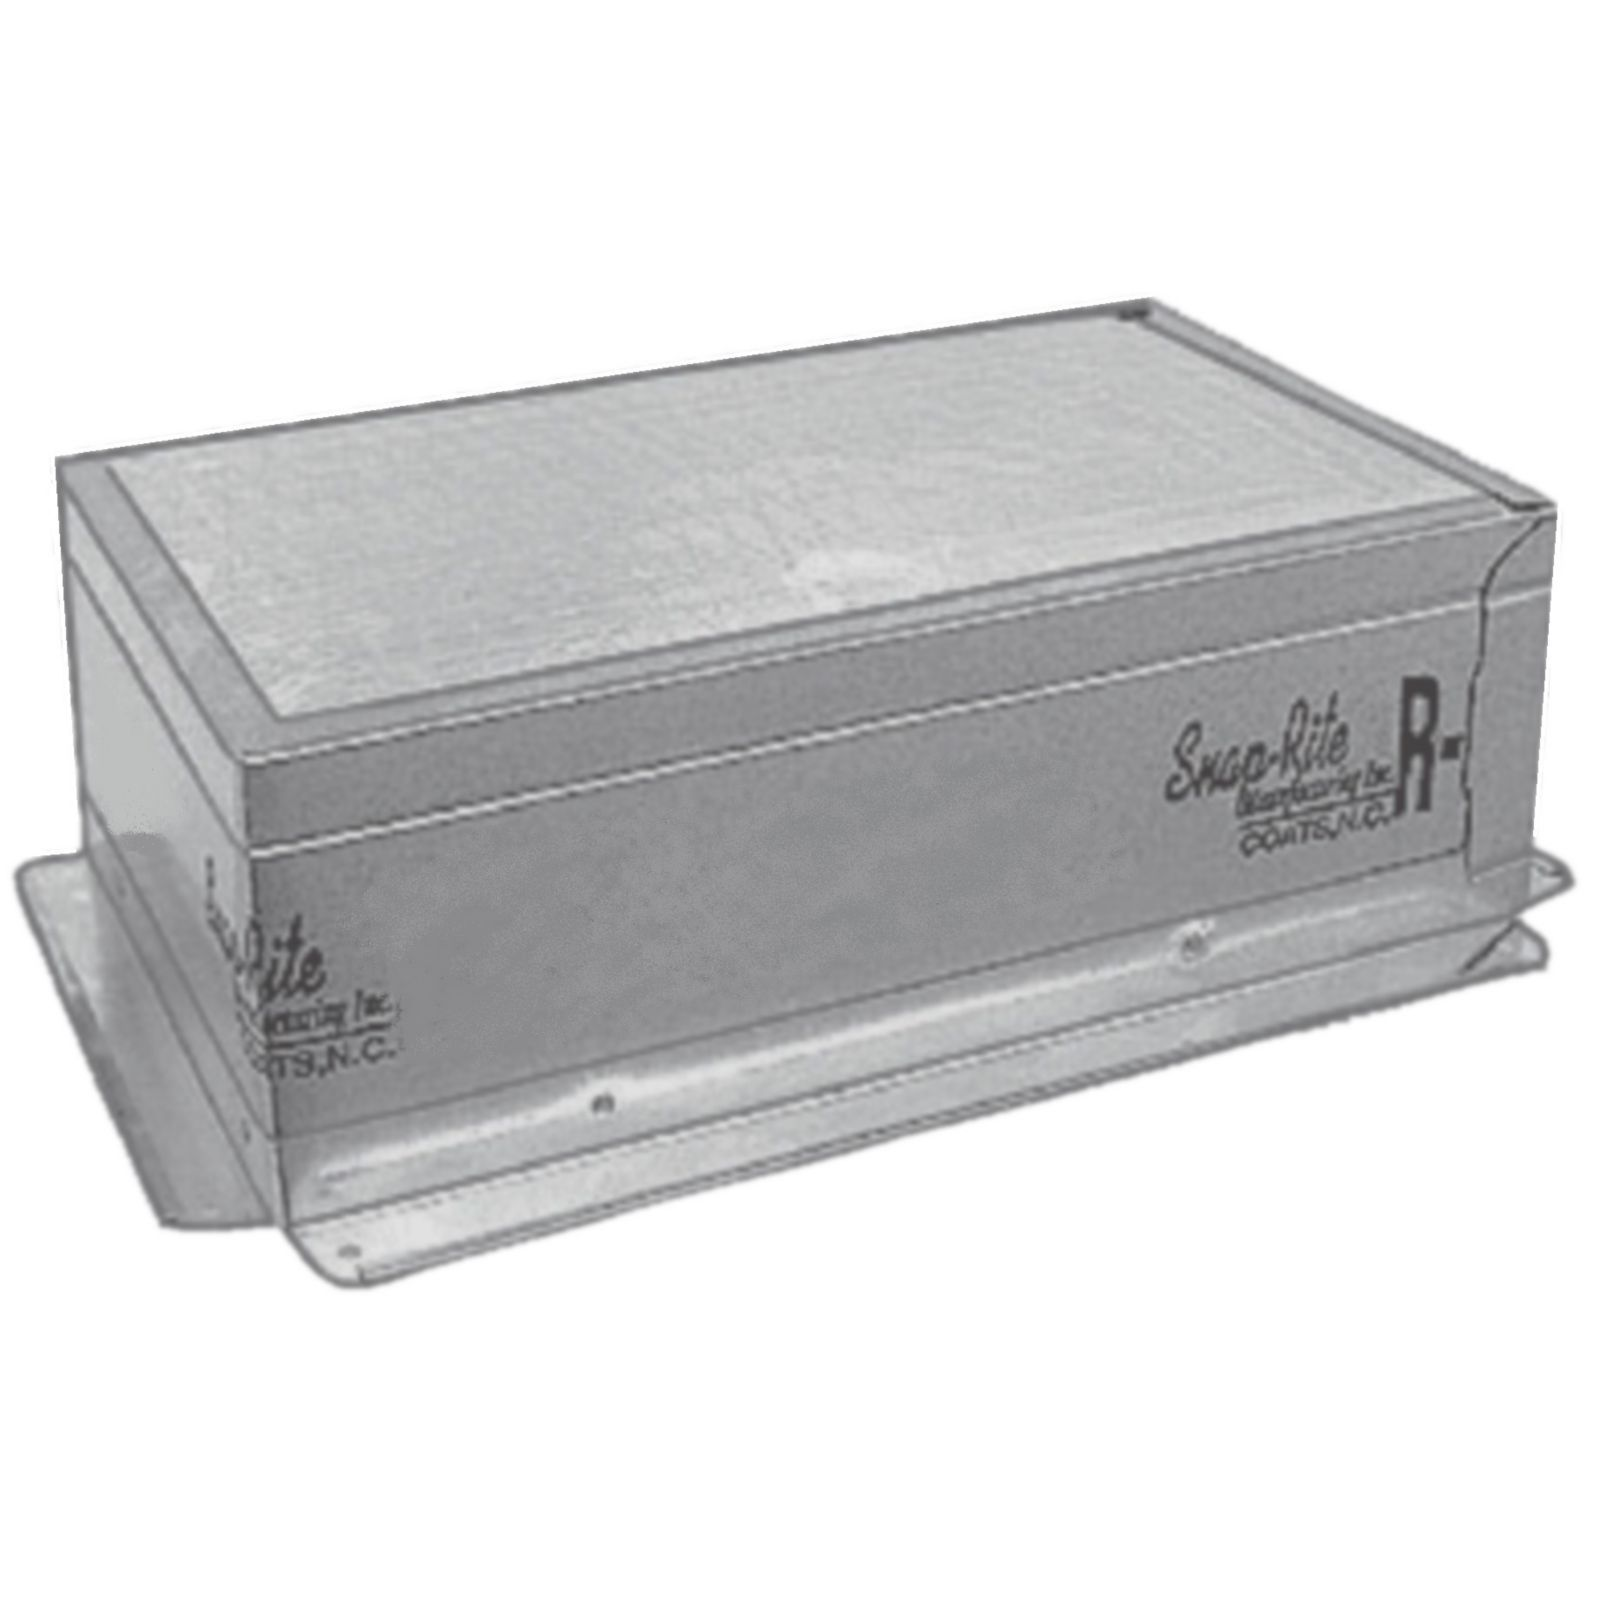 "Snap-Rite 14X06-3800F - Foil Top Insulated Register Box With Flange, 14"" x 06"" - R6"